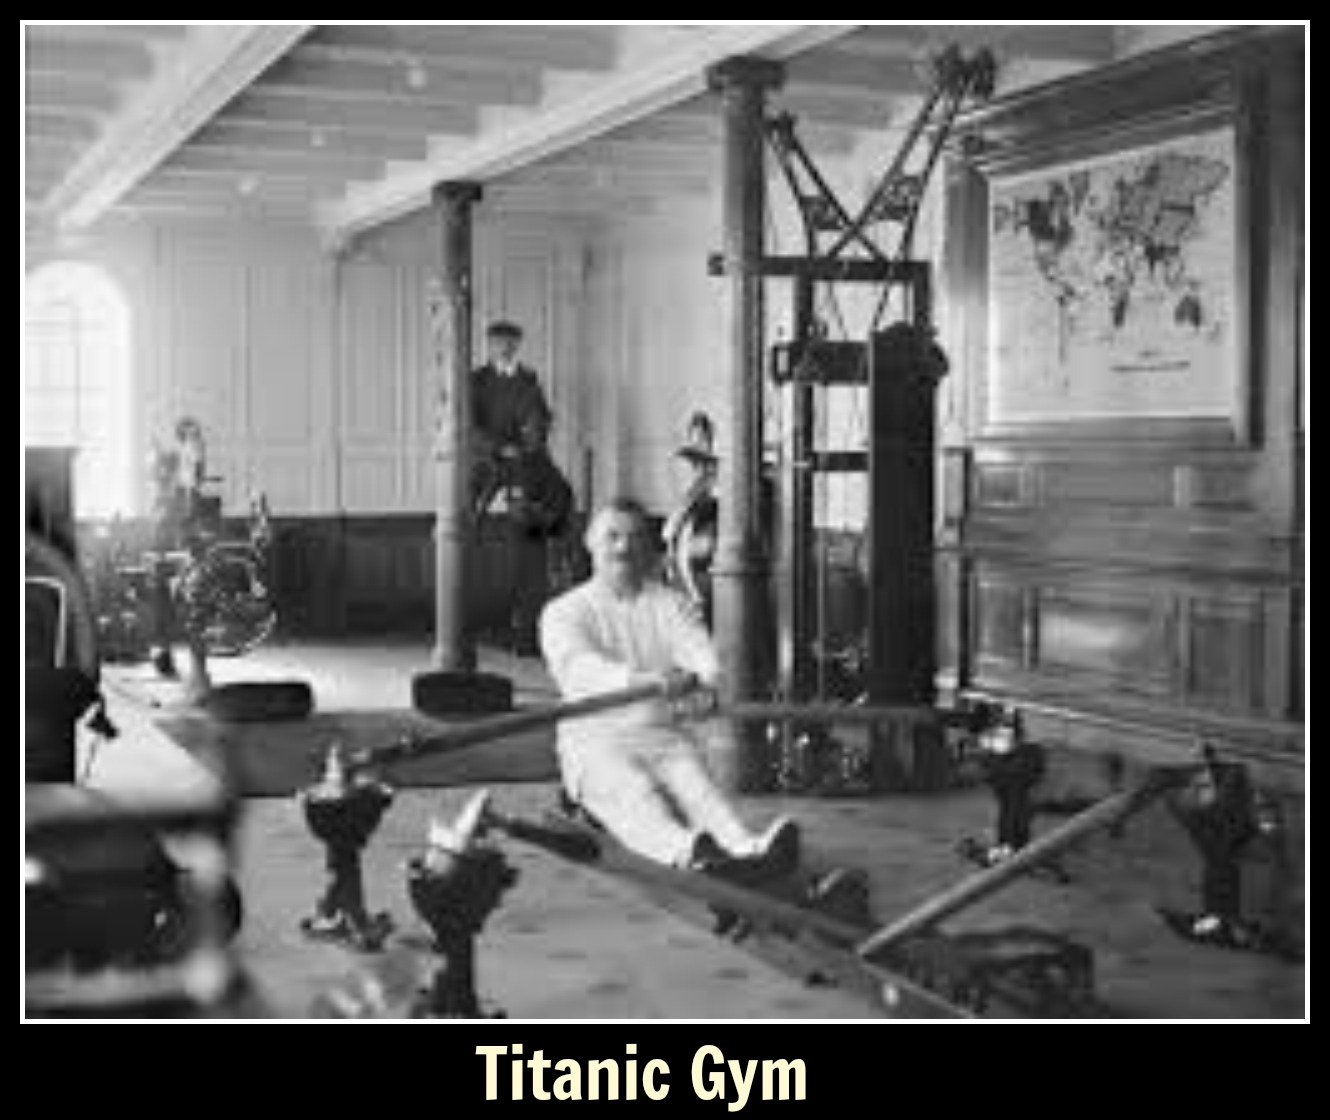 Titanic gym text